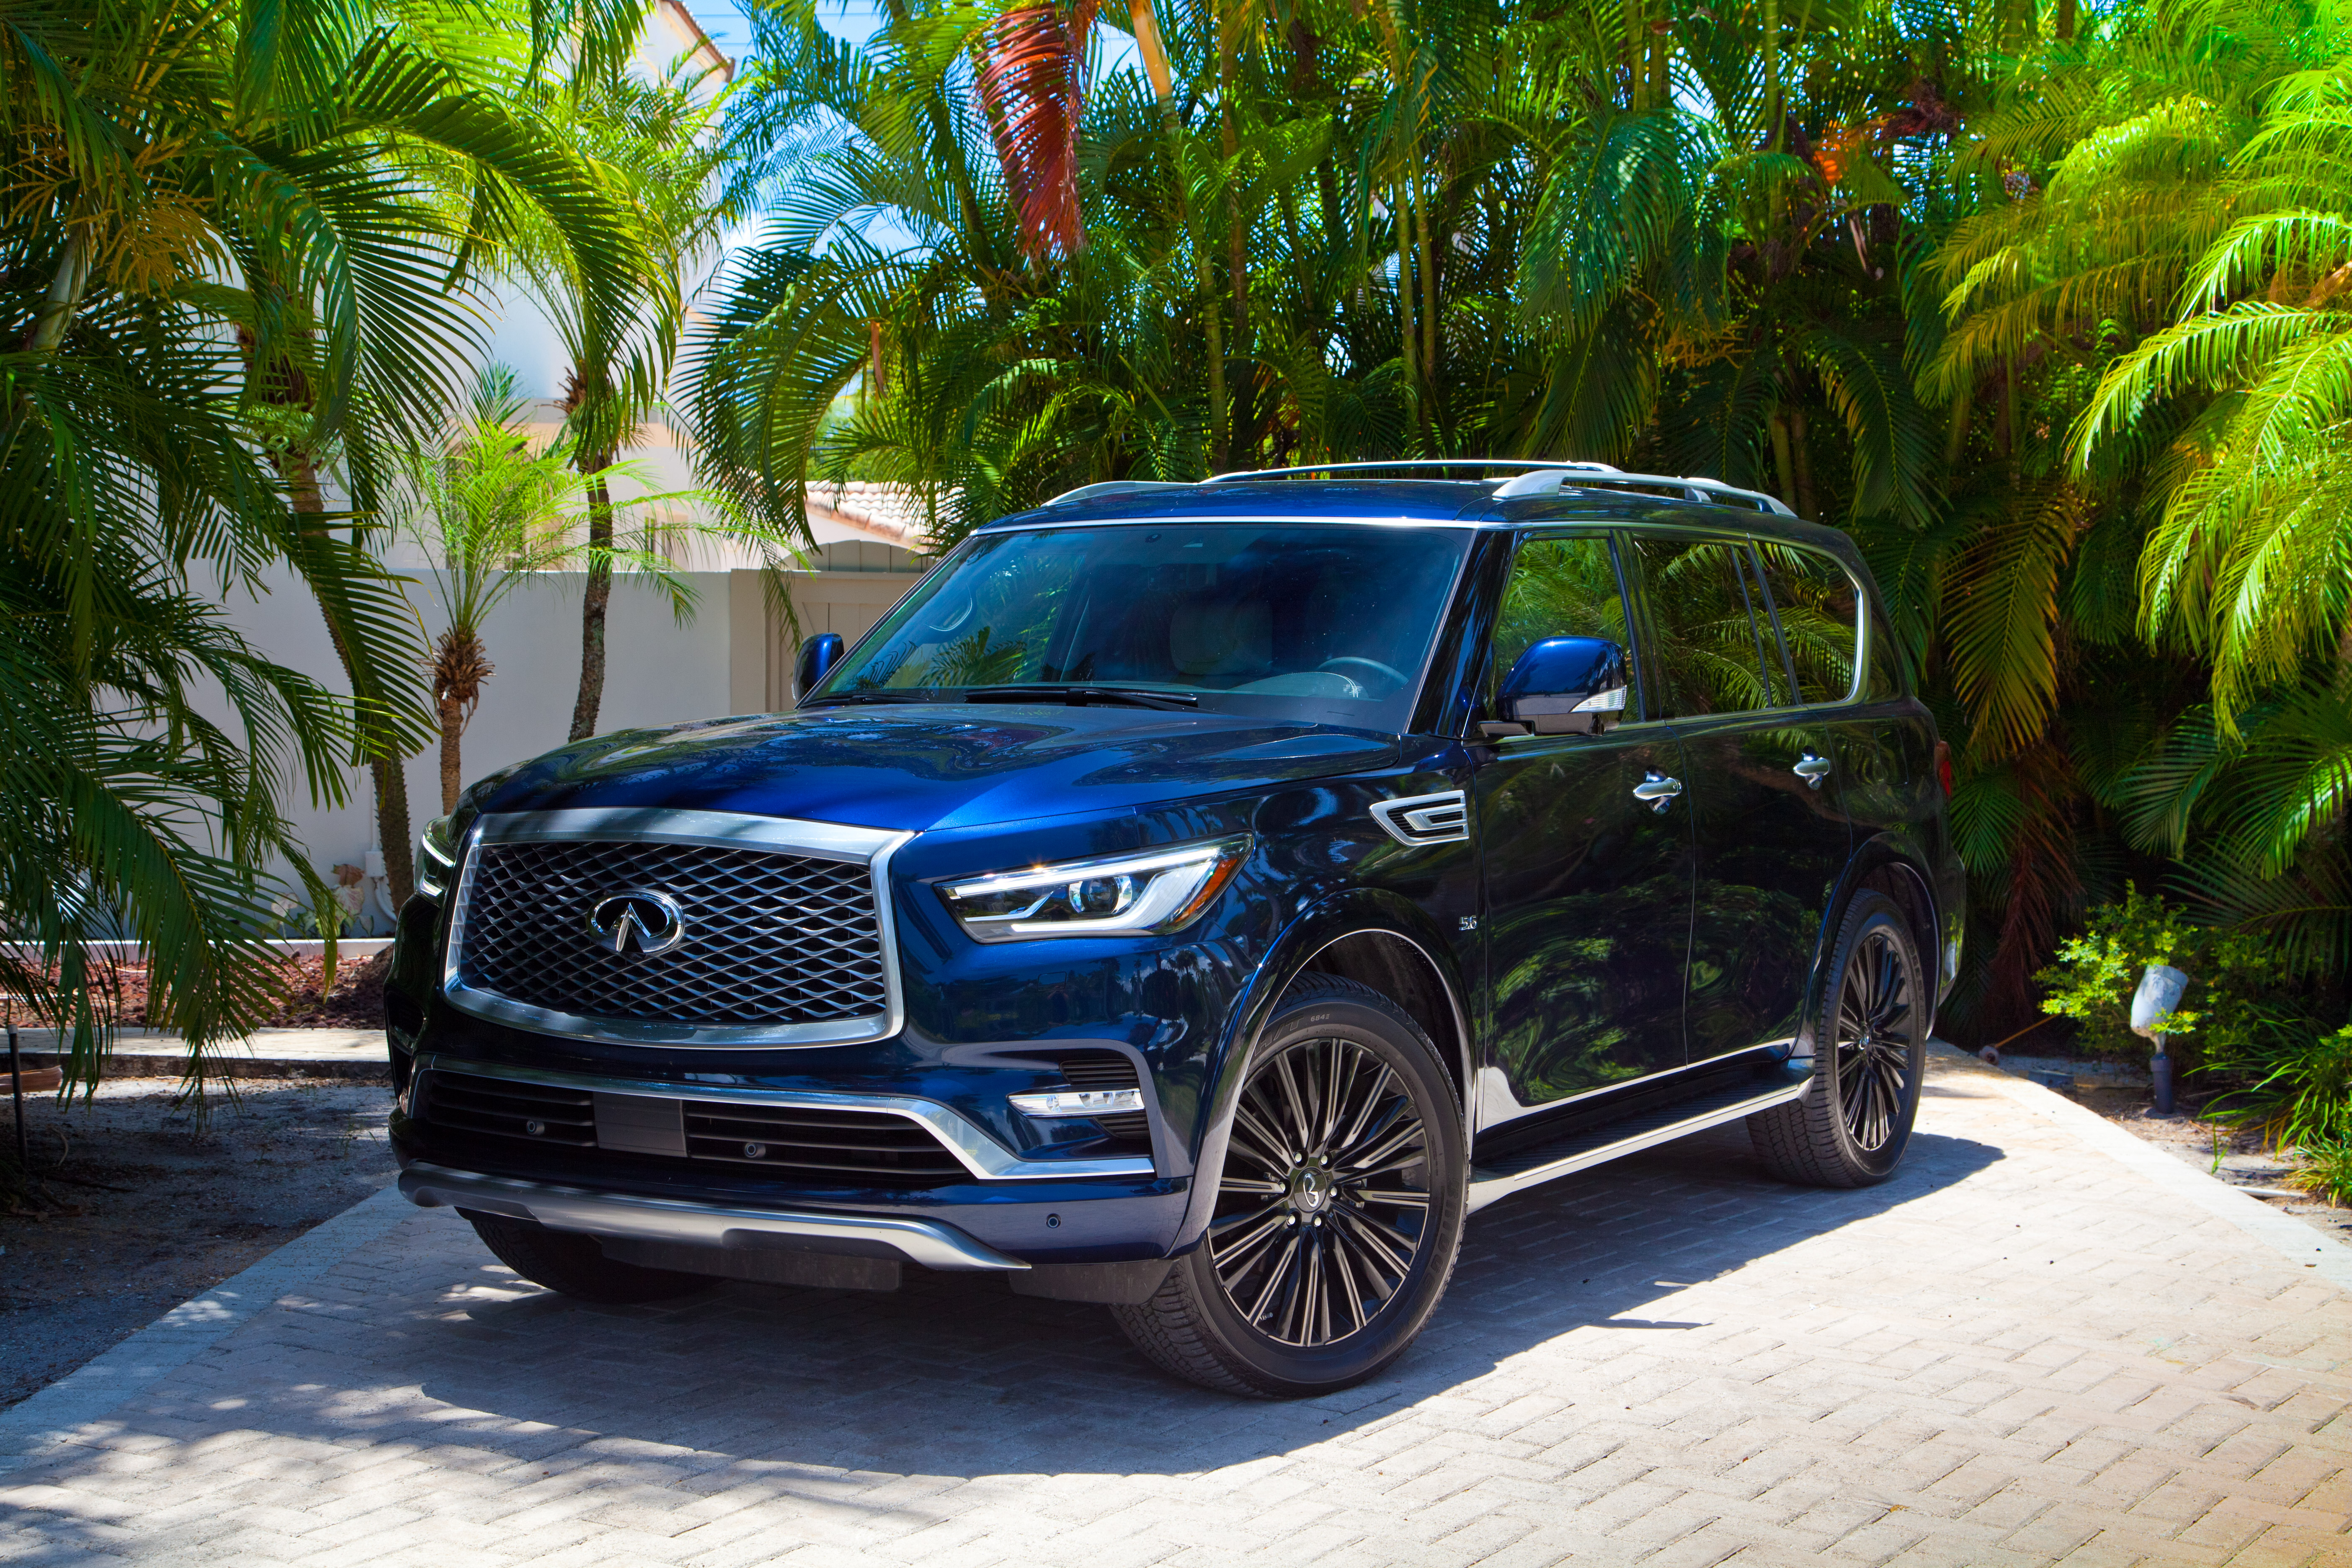 2019 Infinity QX80 - Driven Pictures, Photos, Wallpapers ...